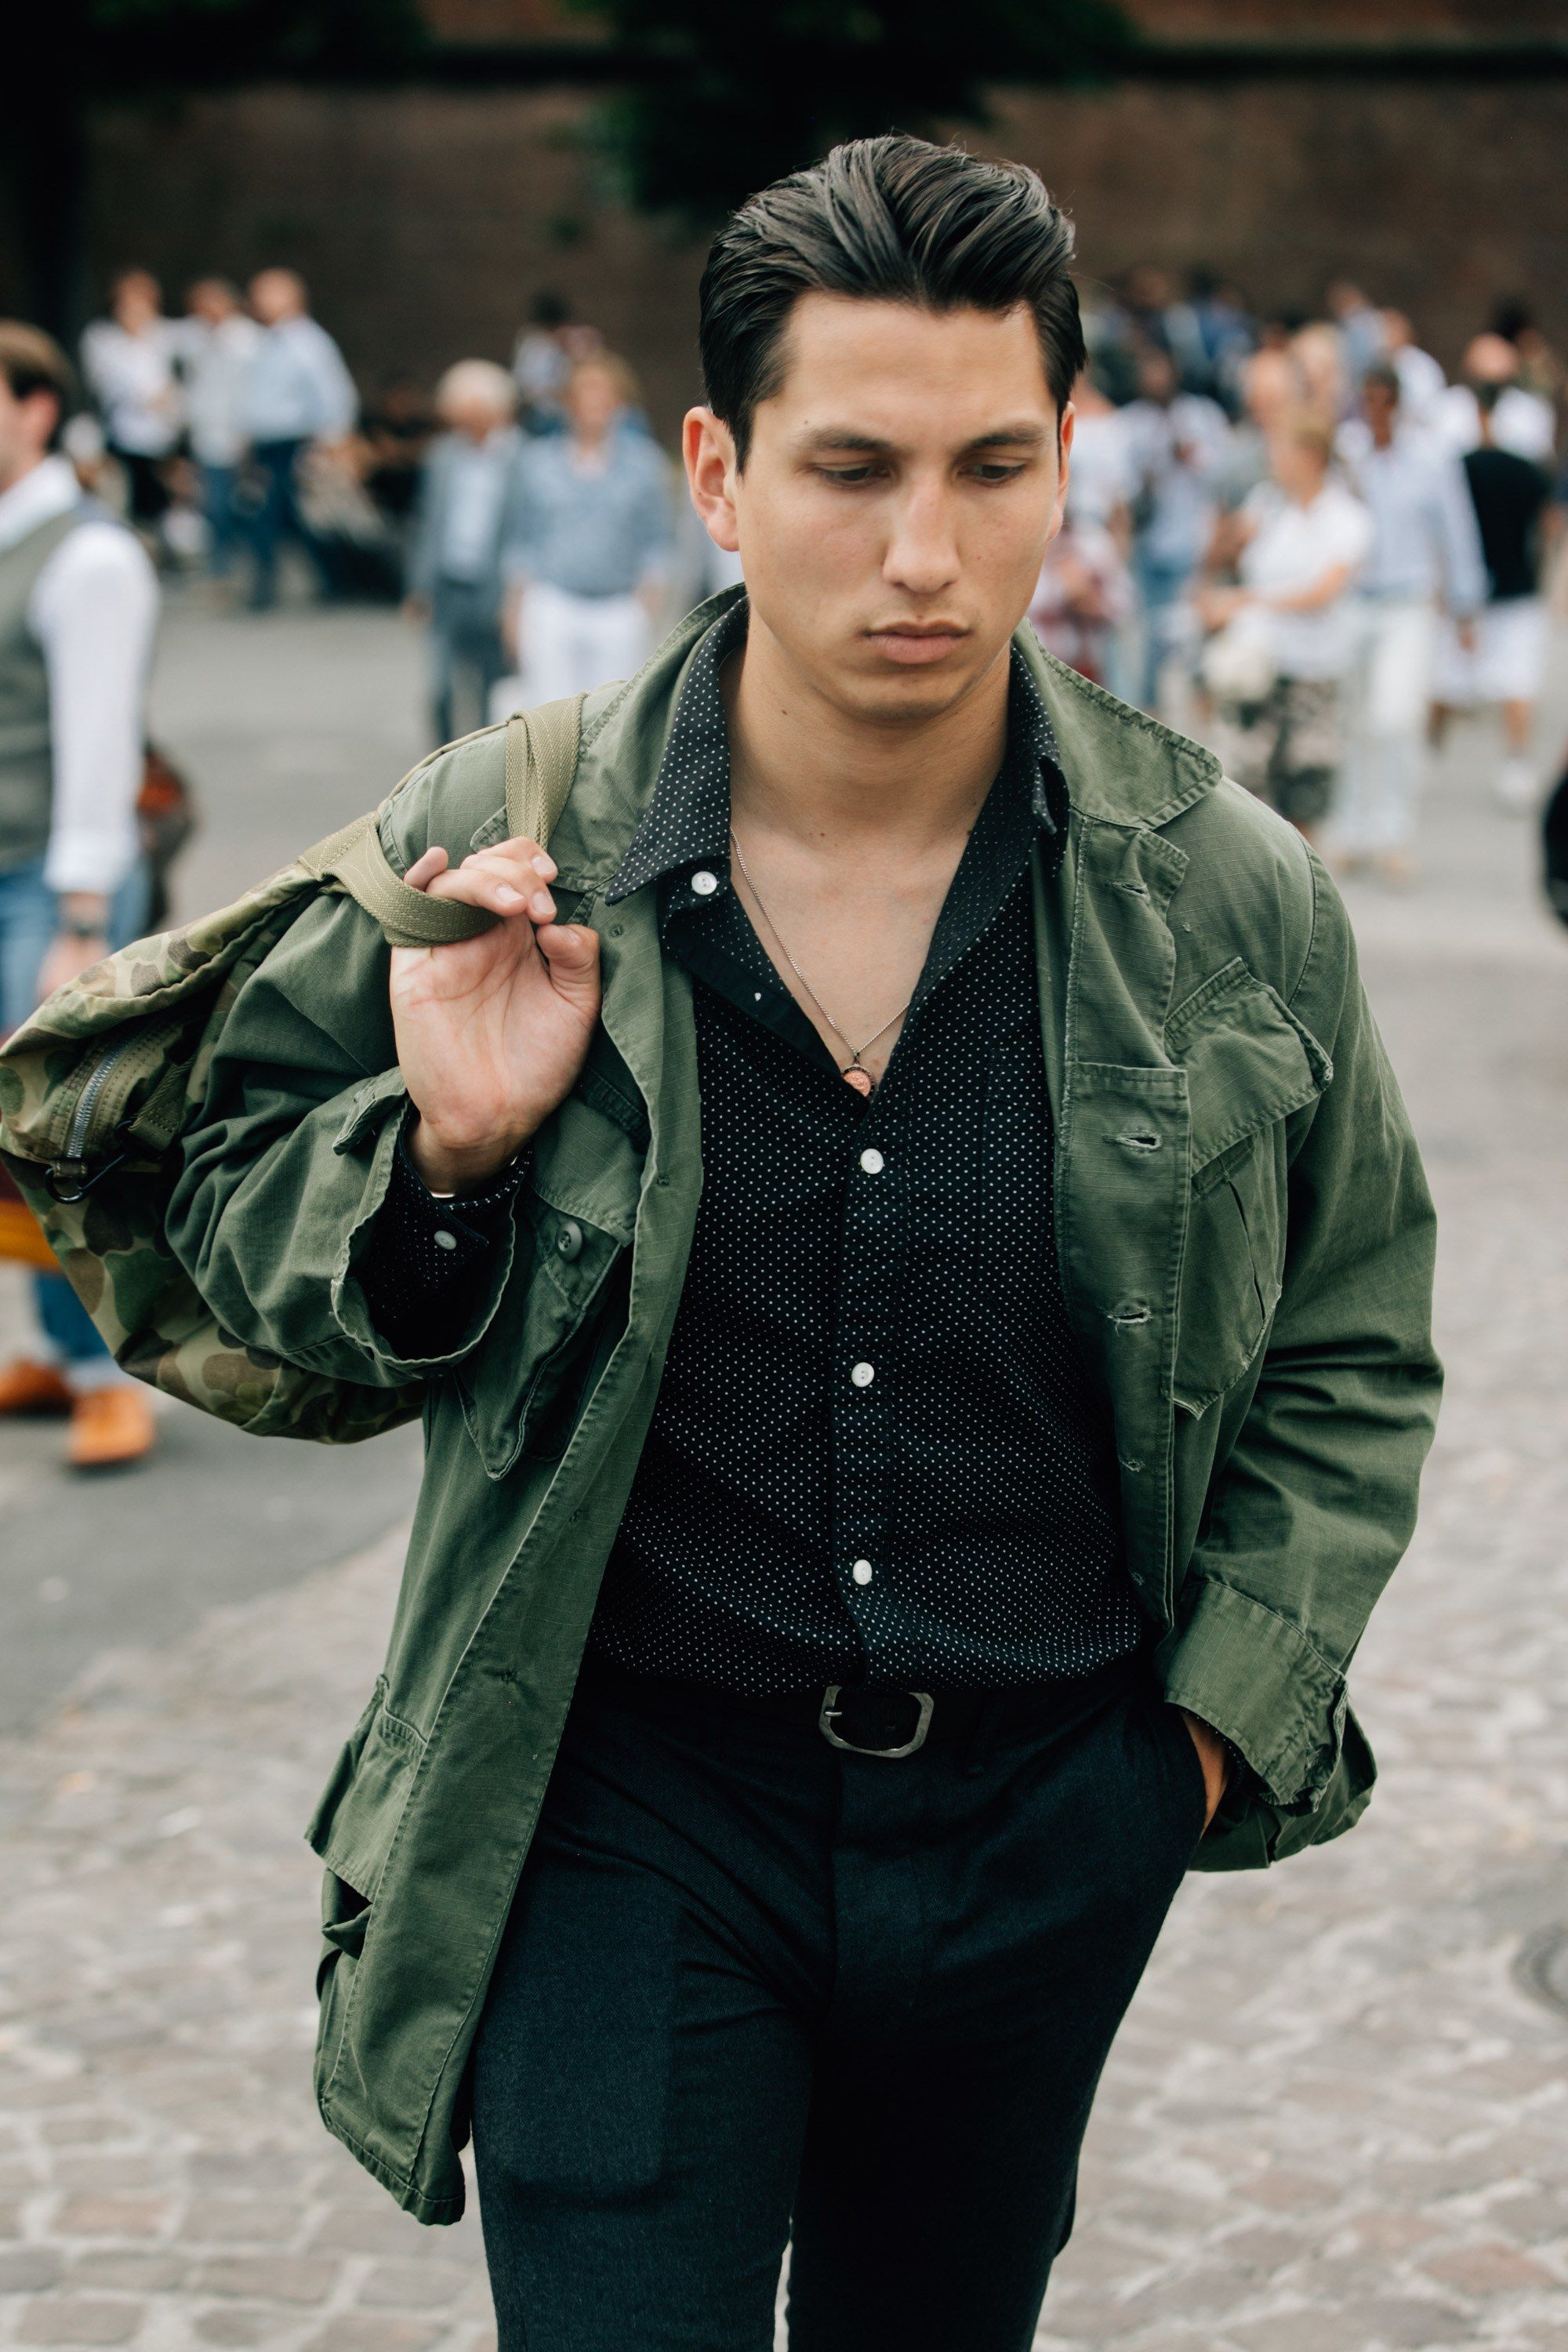 ab2b2e1c705d ... to Dress This Summer. The Best Street Style from Pitti Uomo 92 Photos